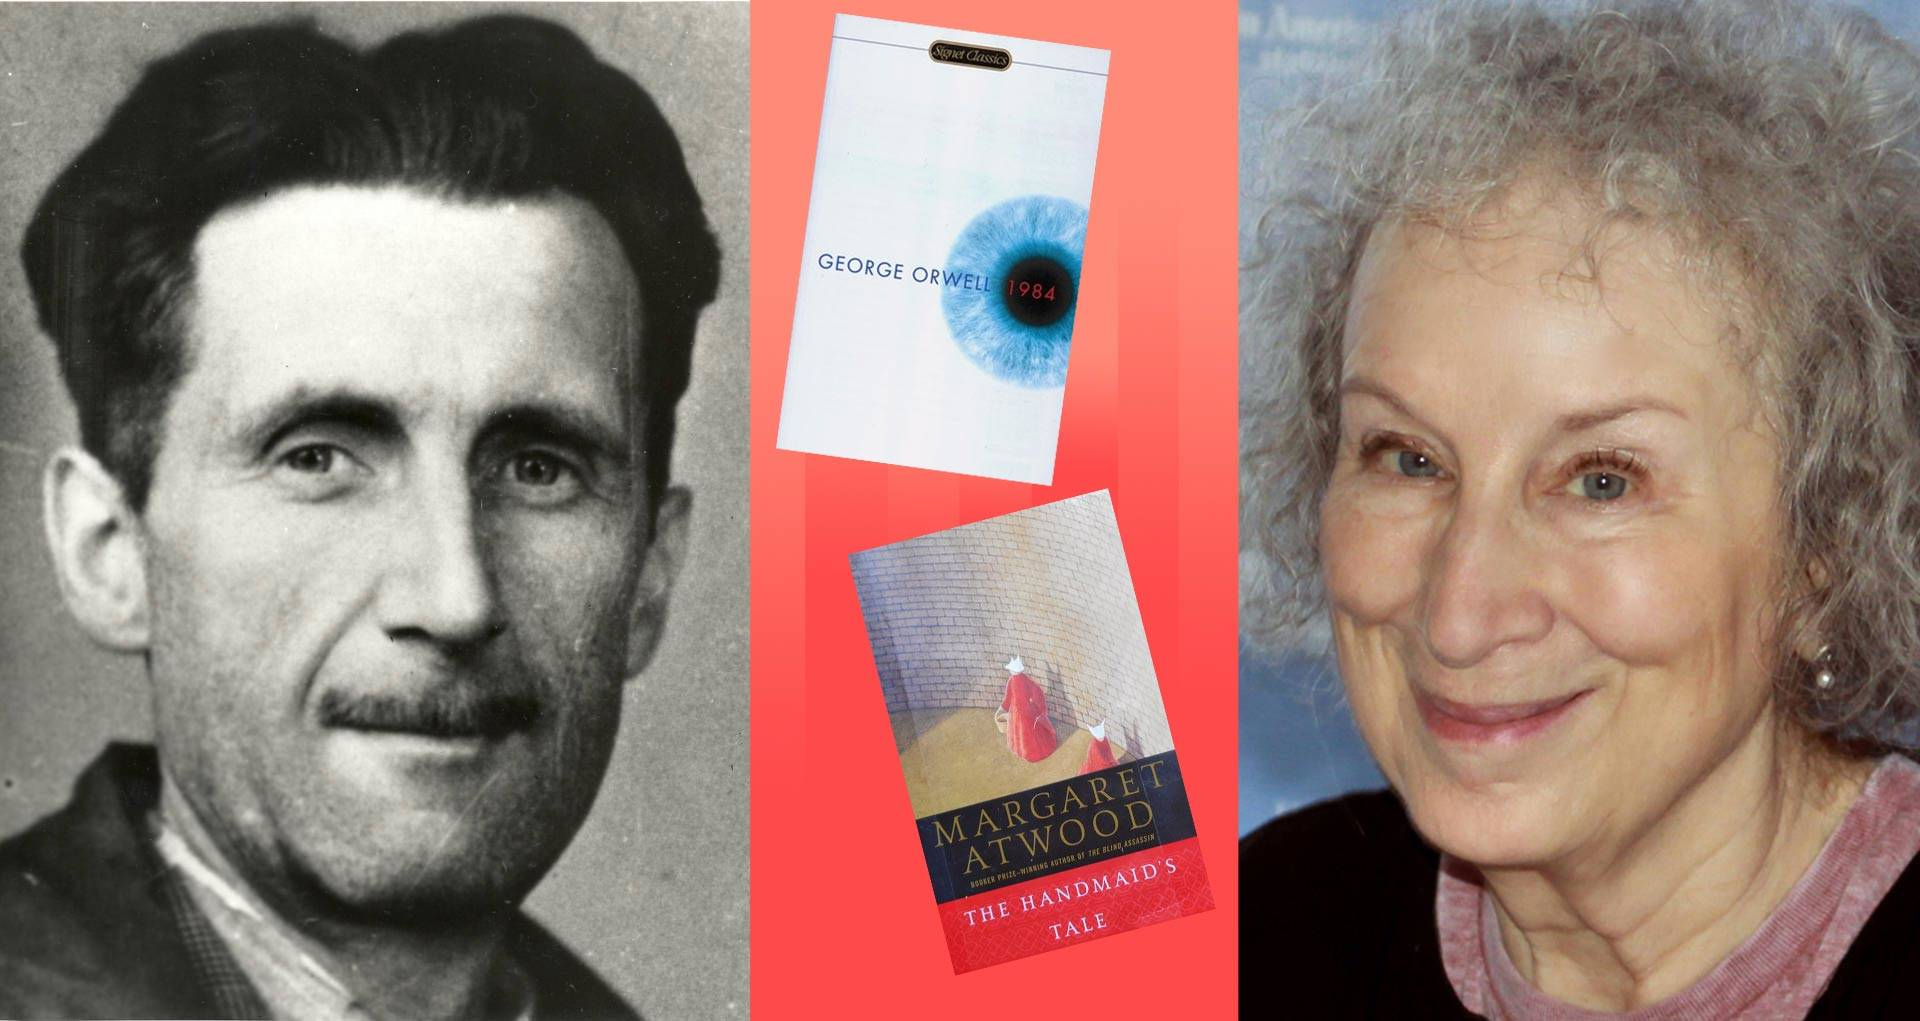 George Orwell and Margaret Atwood suddenly have top-ten bestsellers again.